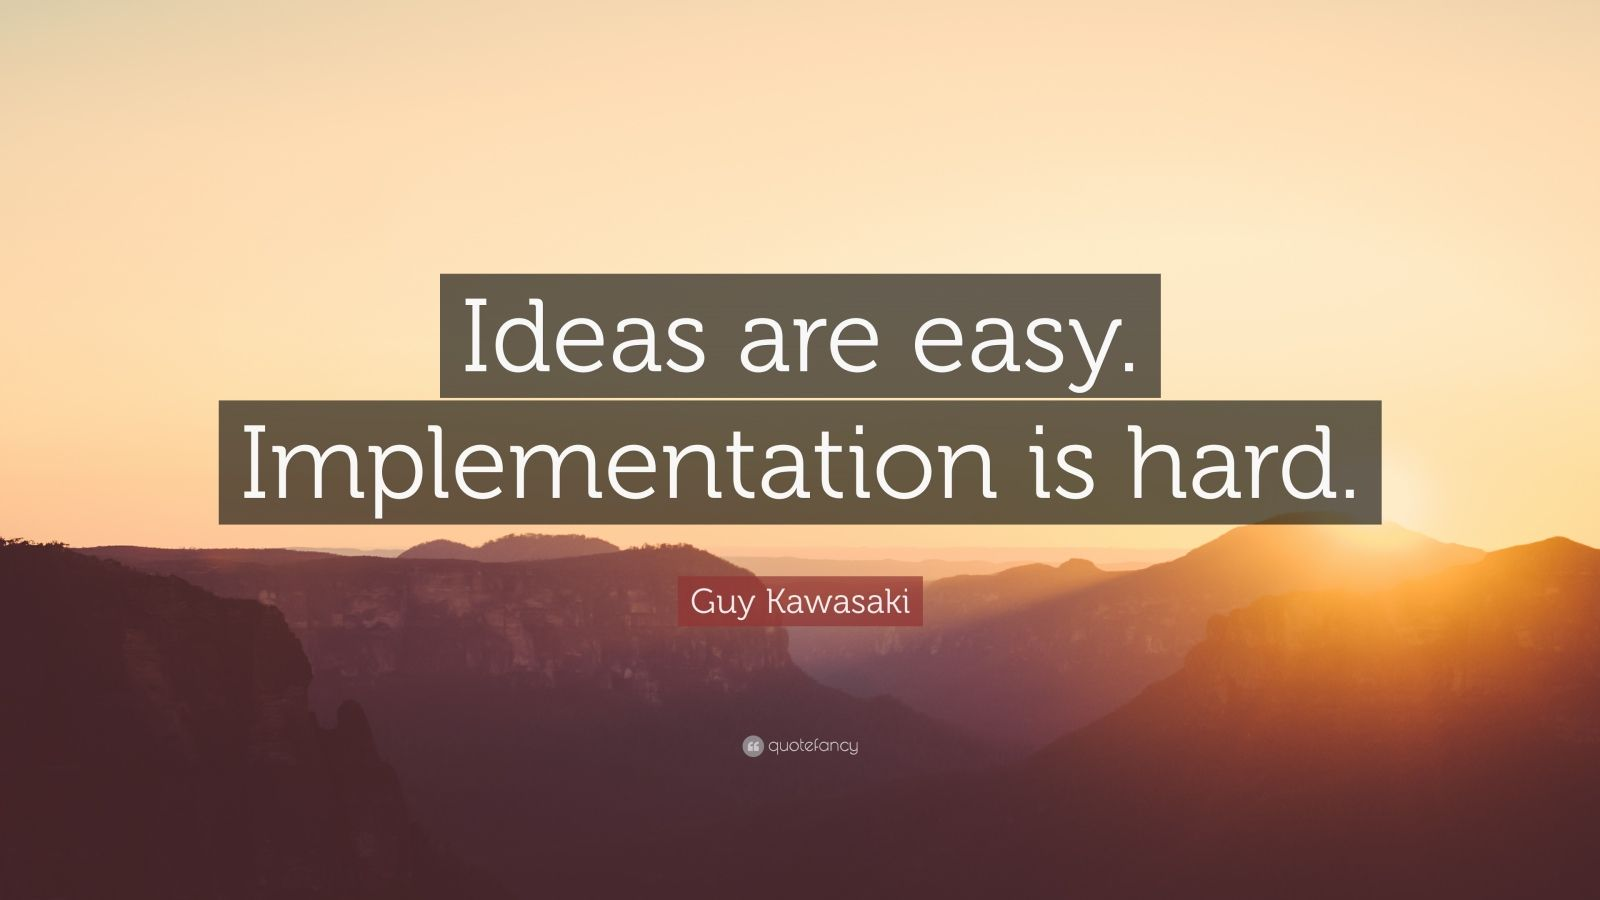 Beautiful Quotes Inspirational Wallpapers Guy Kawasaki Quote Ideas Are Easy Implementation Is